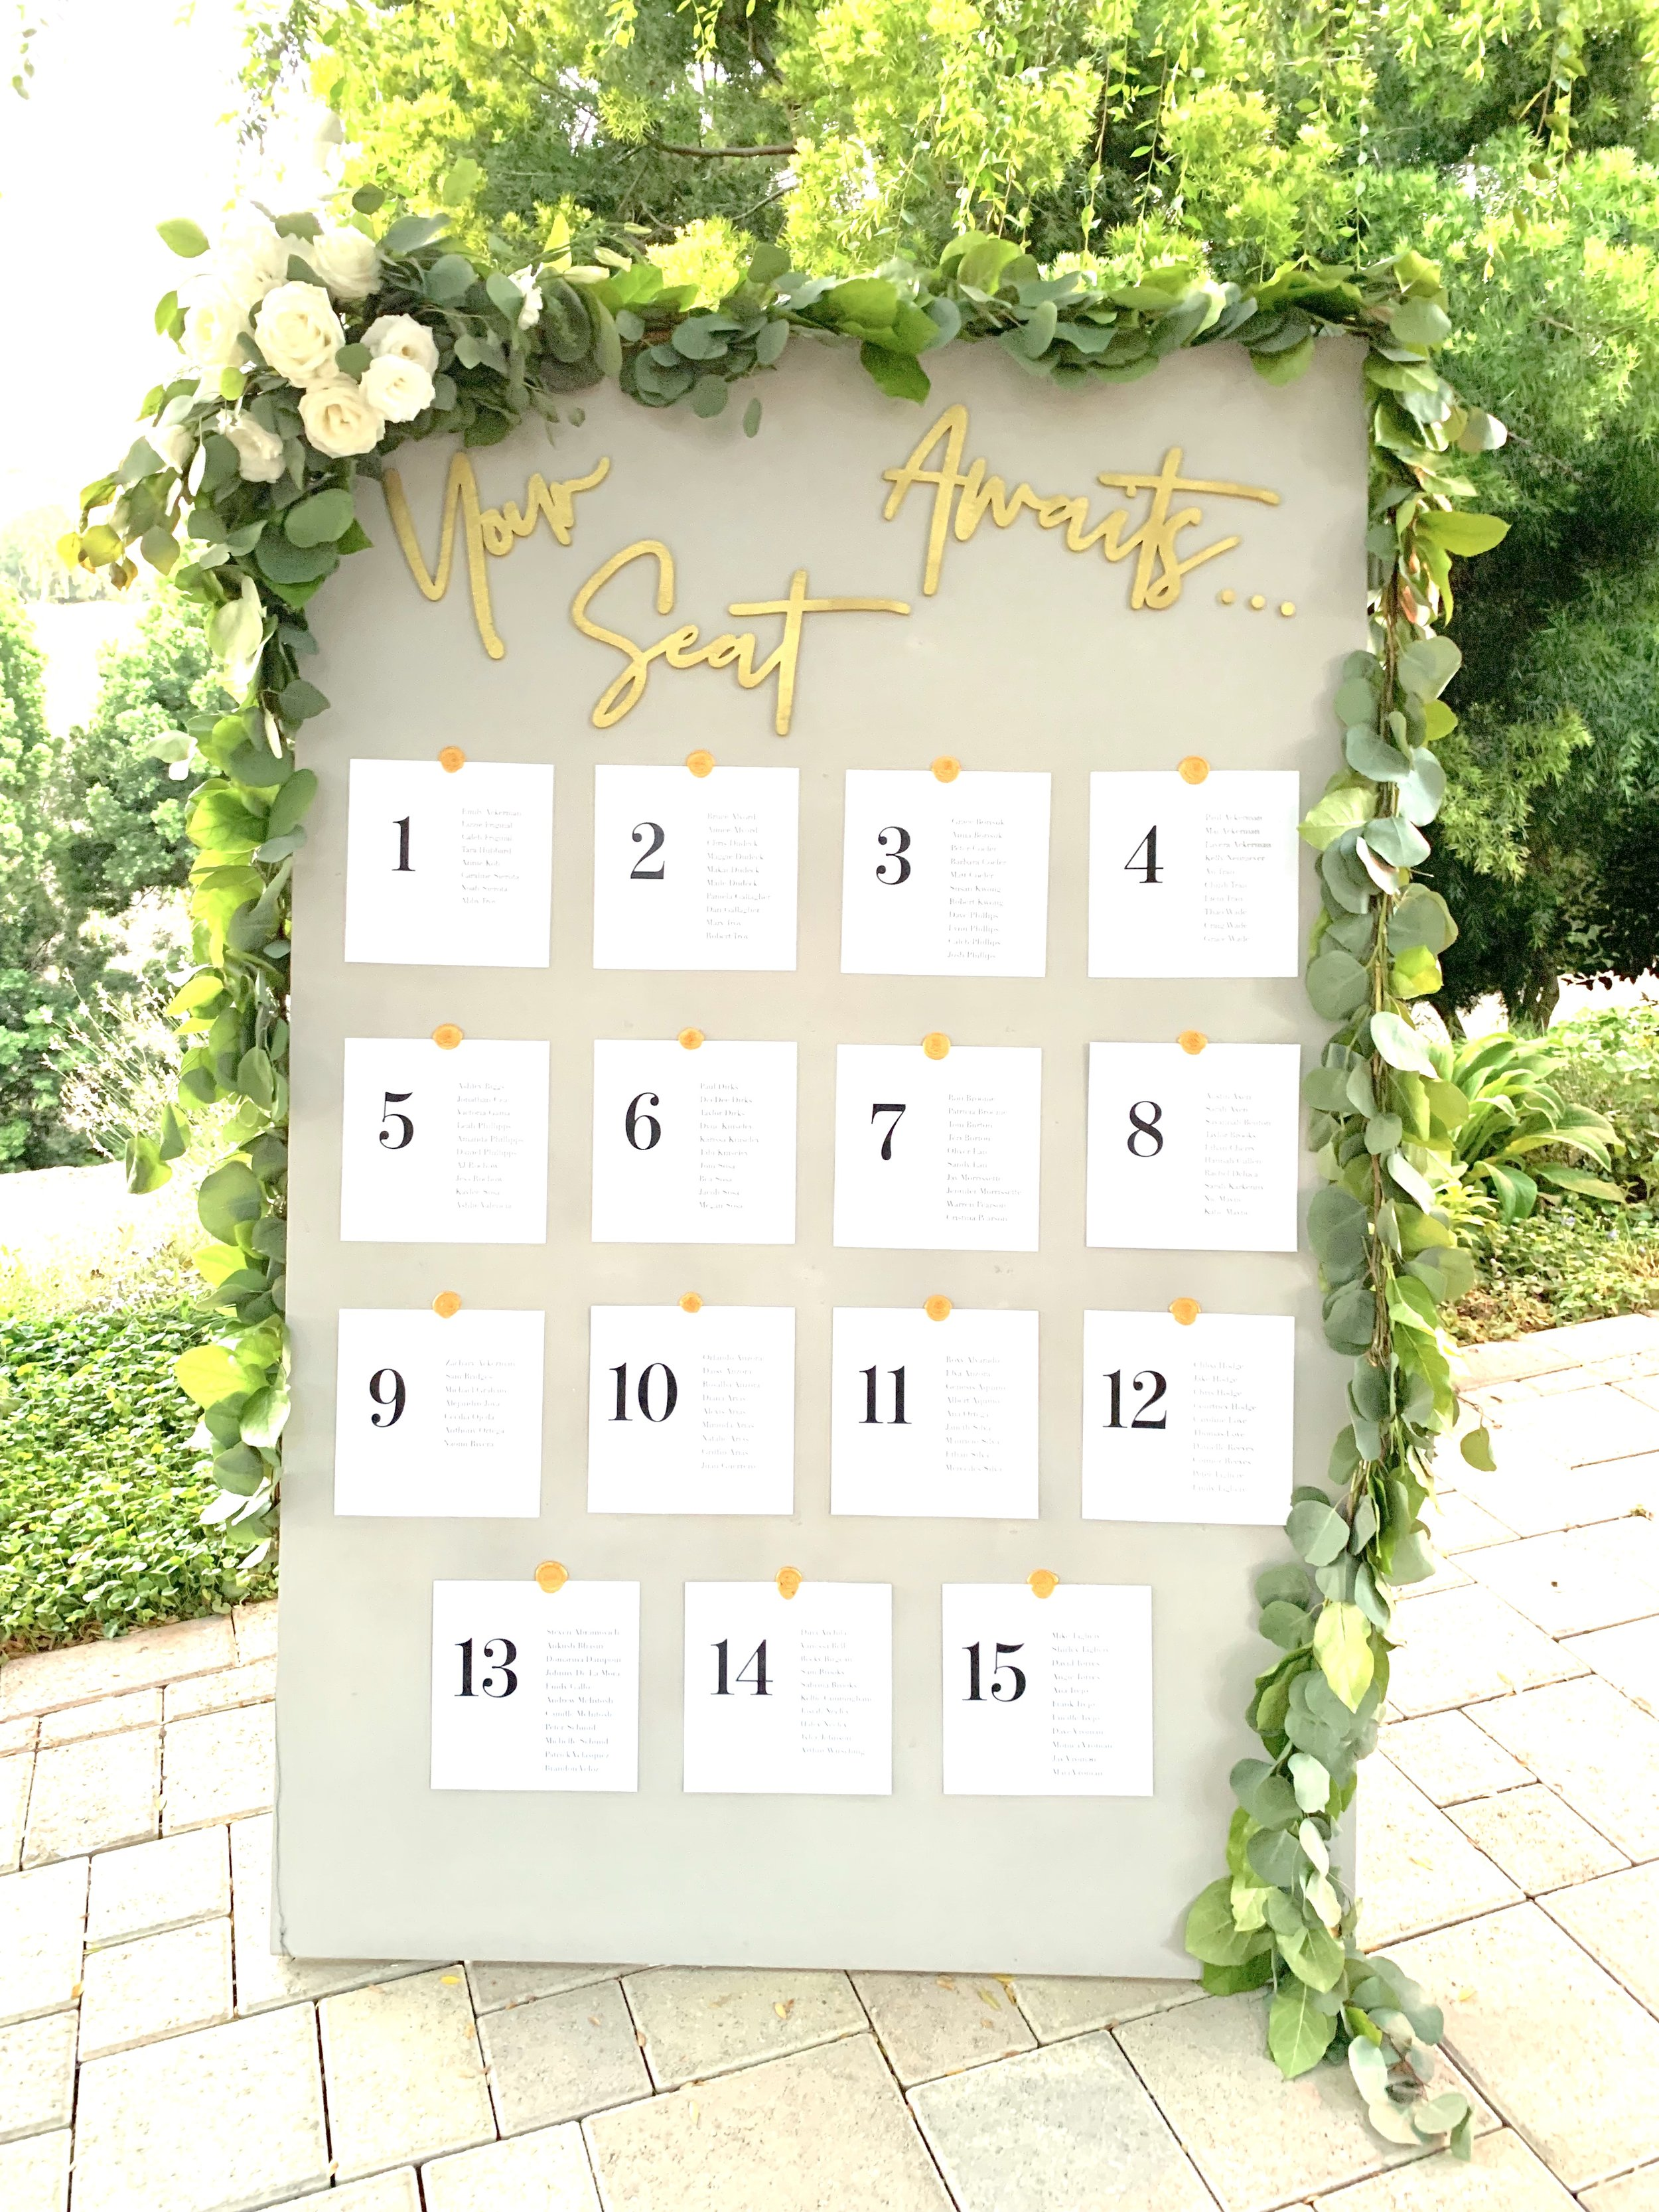 ESCORT PAGE DISPLAY BOARD - $75